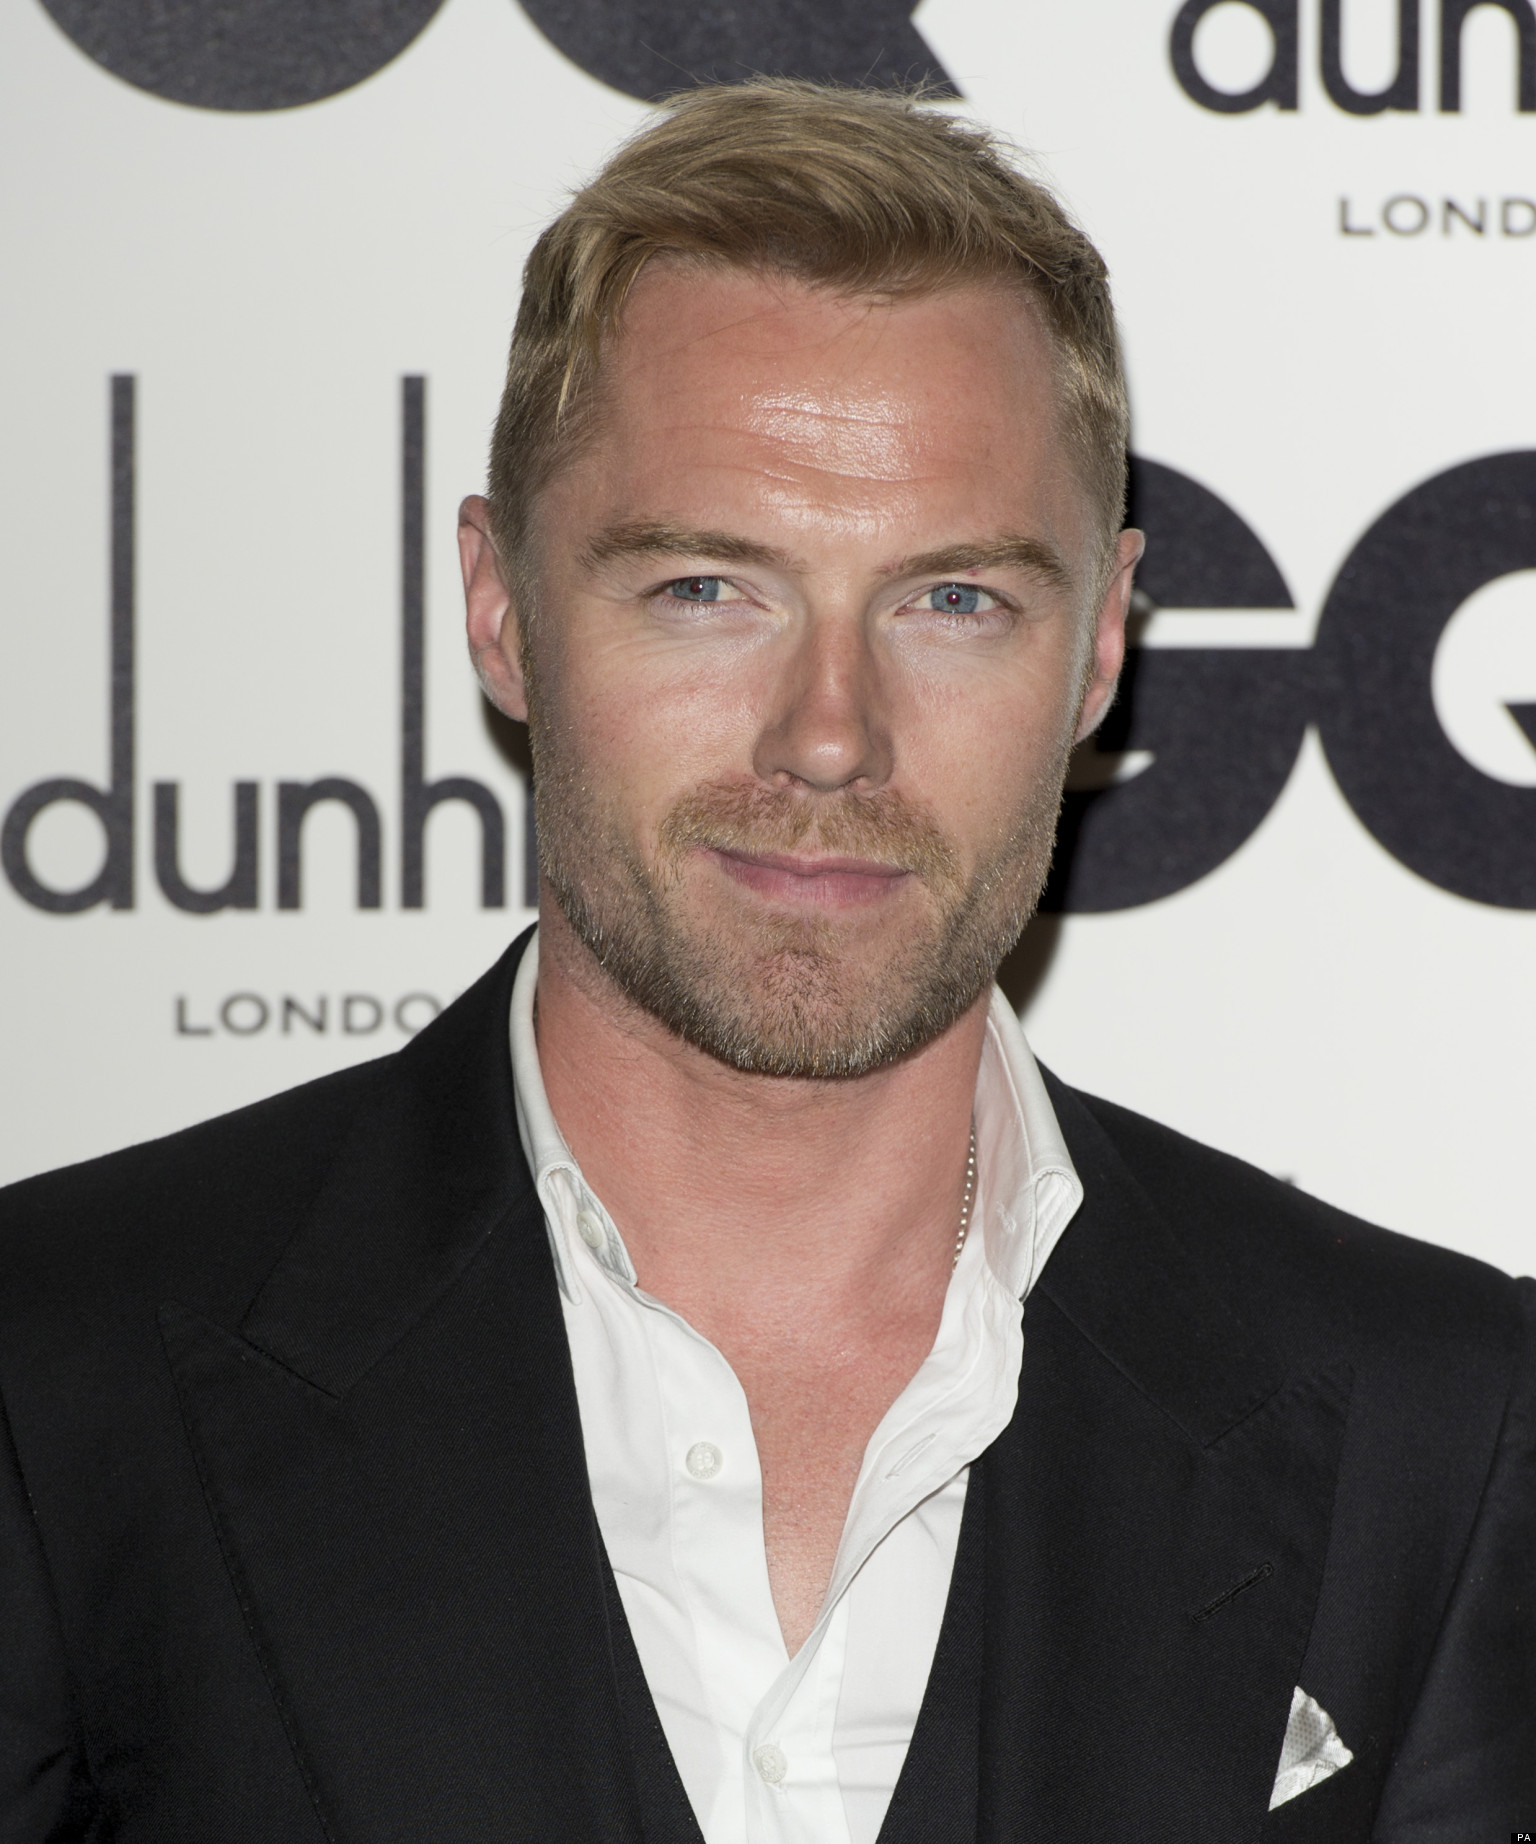 <b>Ronan Keating's</b> Dancer Mistress Francine Cornell Speaks Out About Affair - o-RONAN-KEATING-facebook